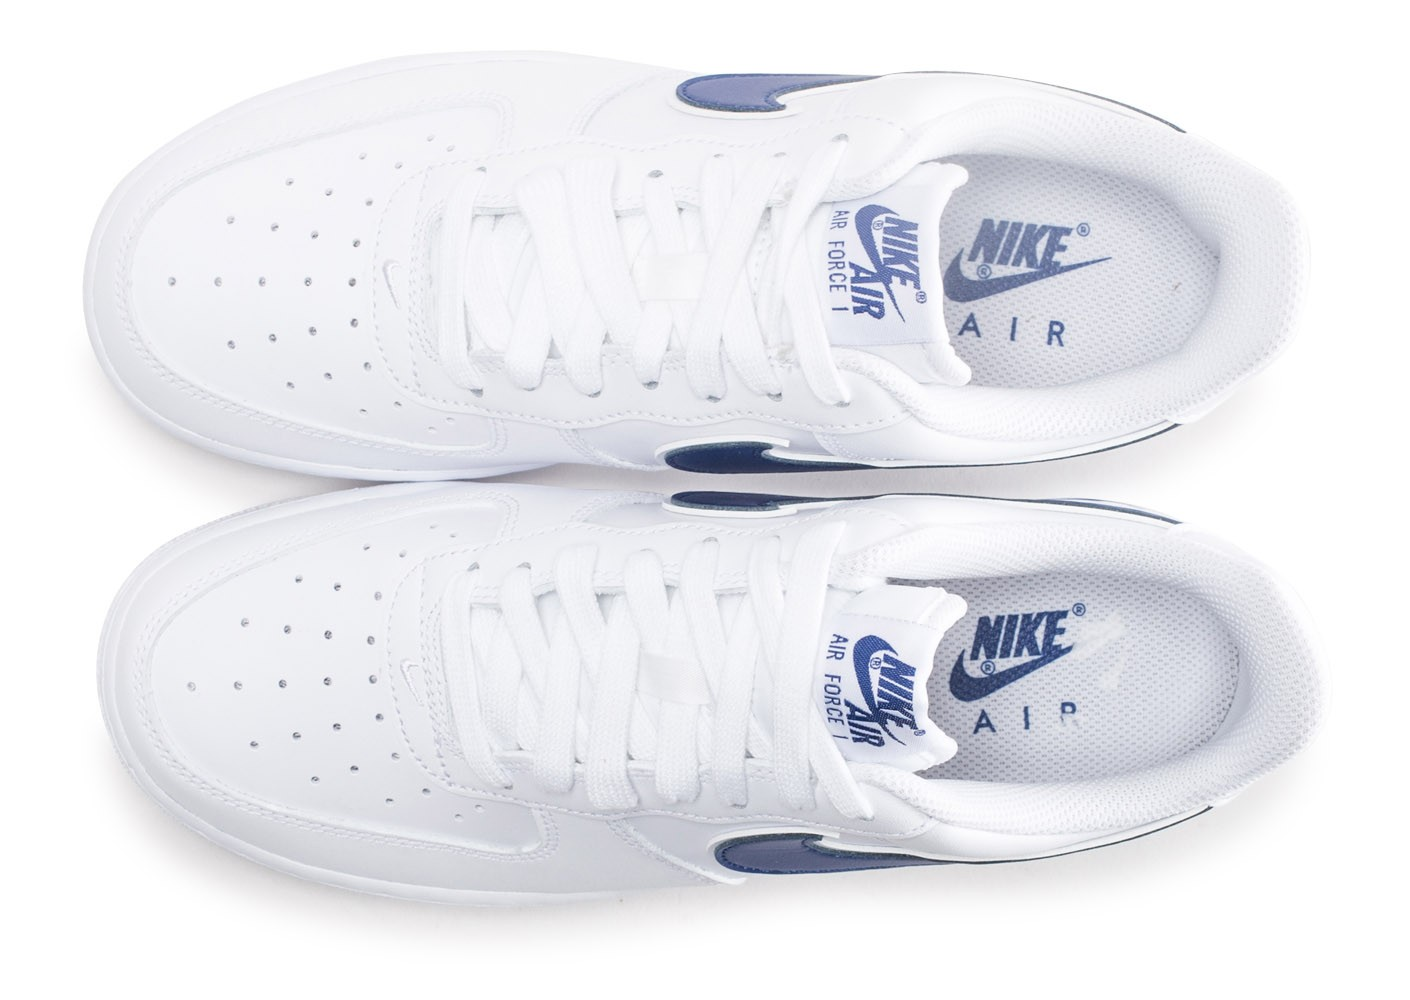 Nike Air Force 1 '07 blanche et bleue marine Chaussures